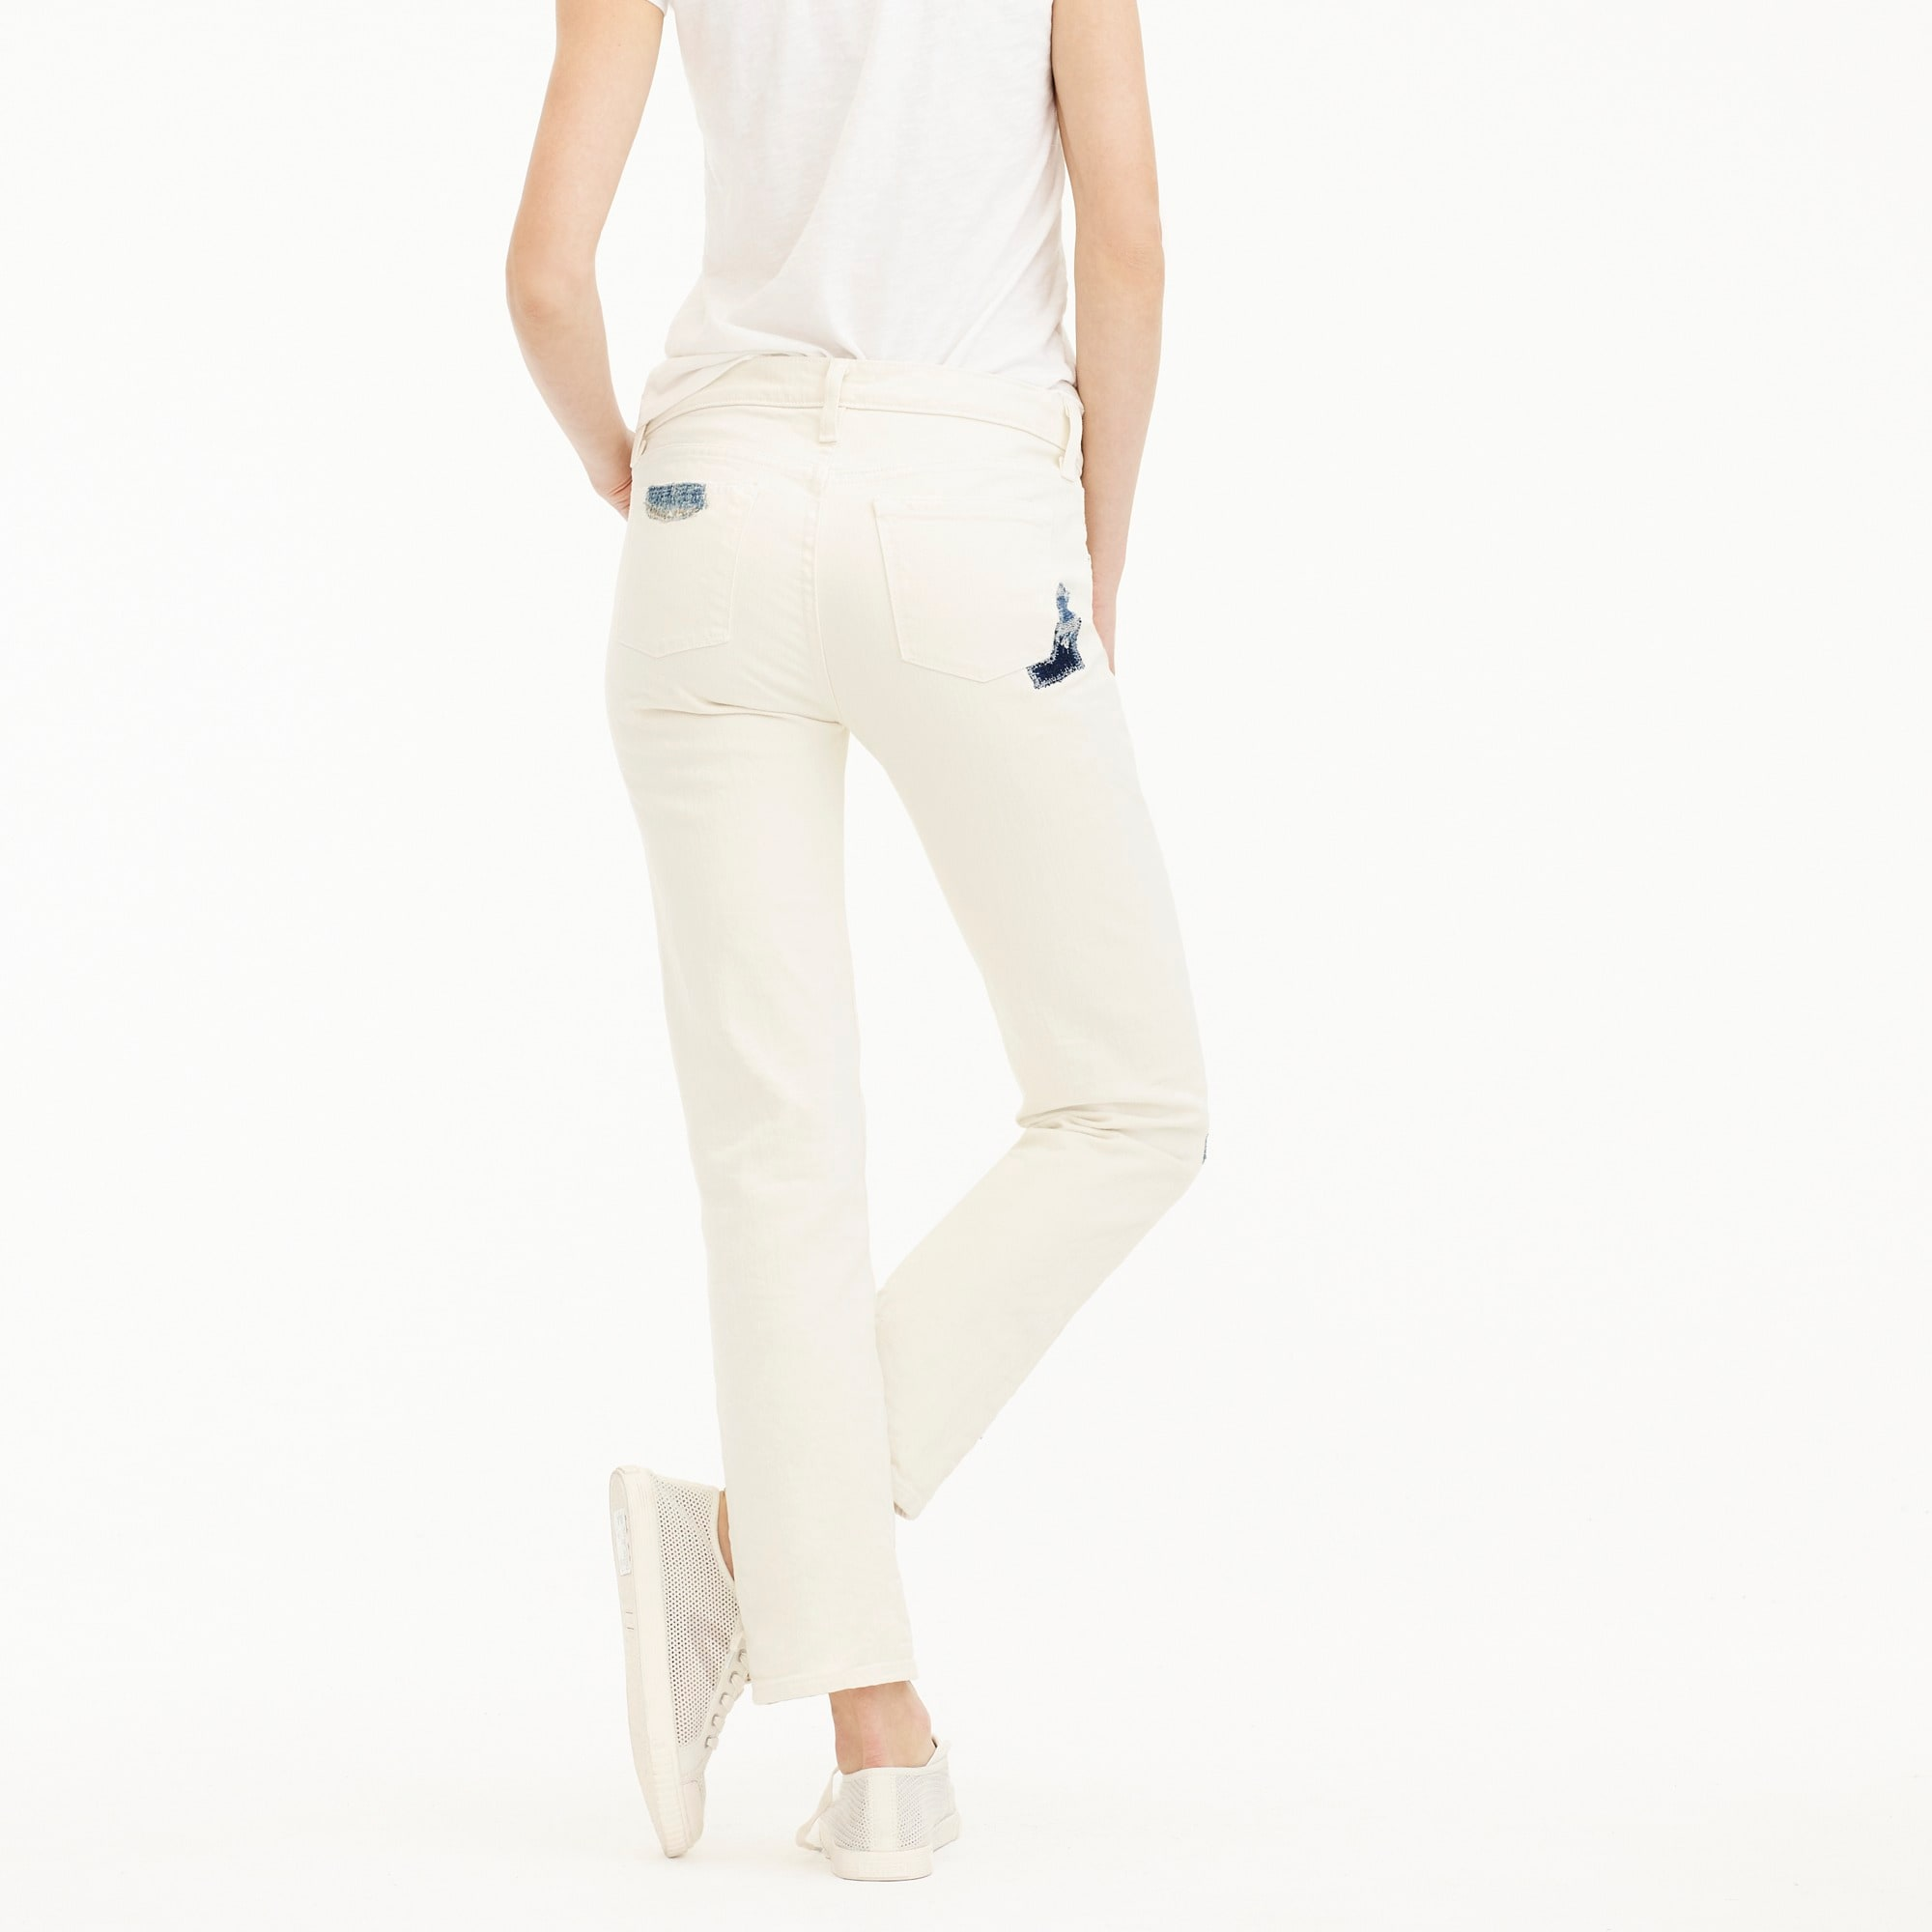 Image 4 for Sean Hornbeak for J.Crew slim boyfriend jean with indigo patches in white